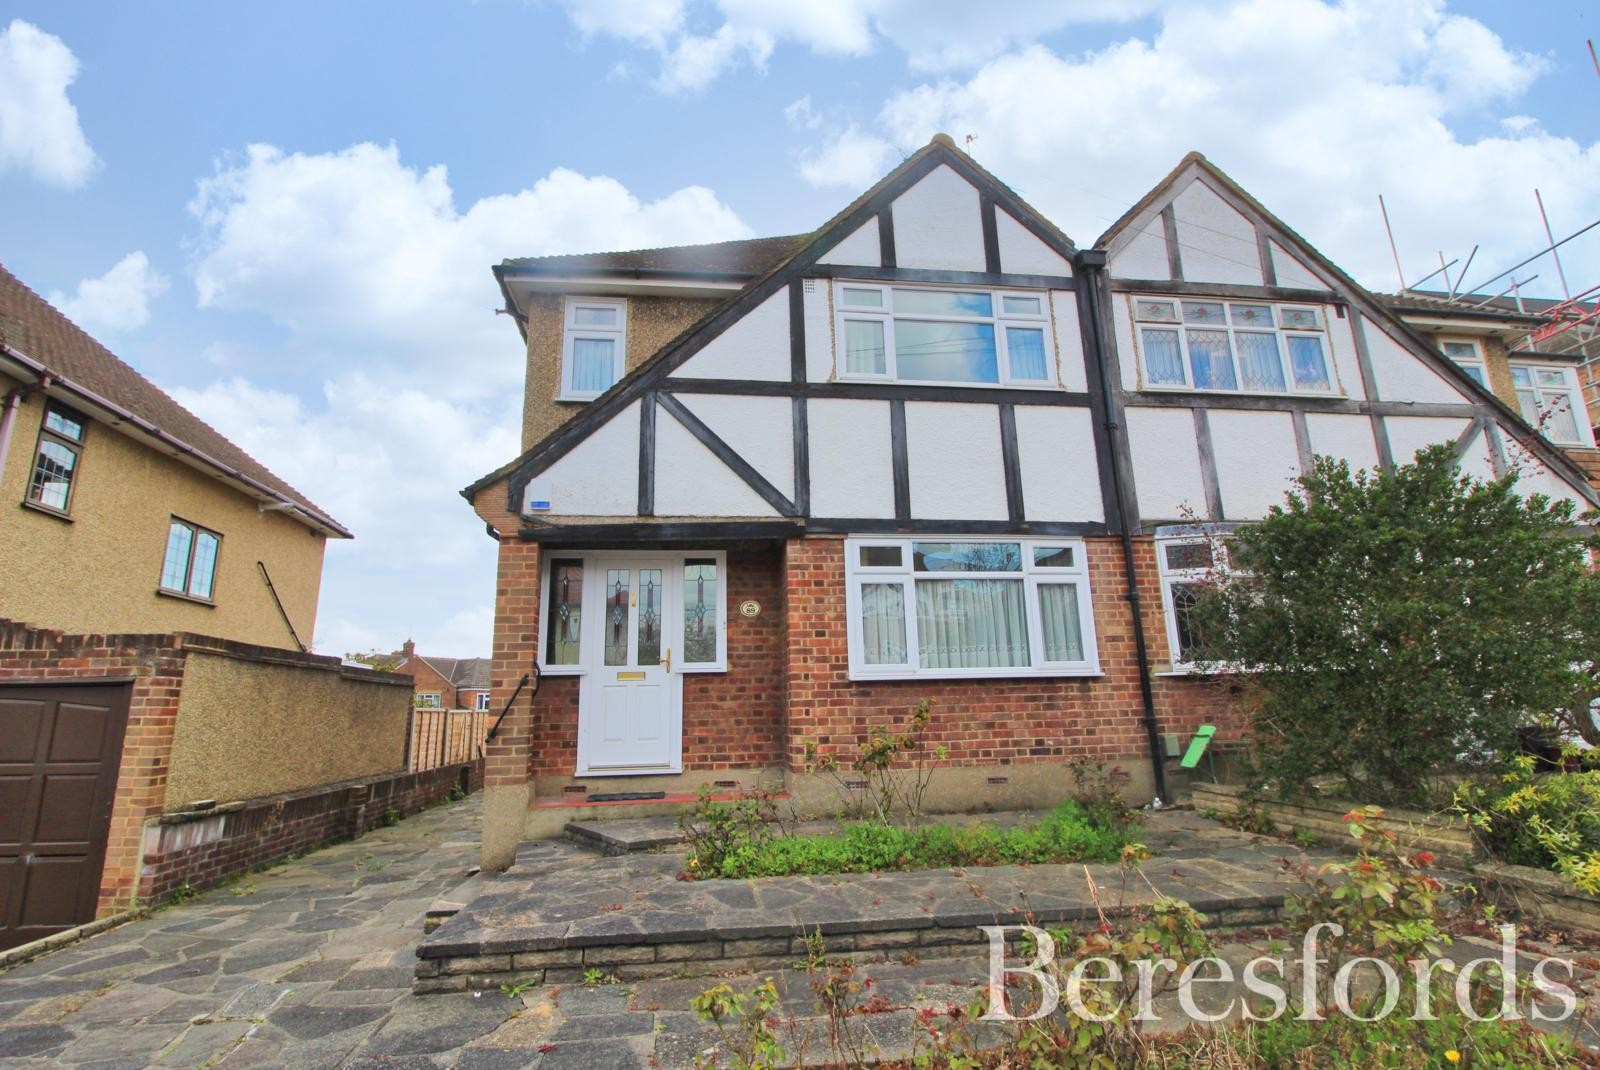 Severn Drive, Upminster, Essex, RM14